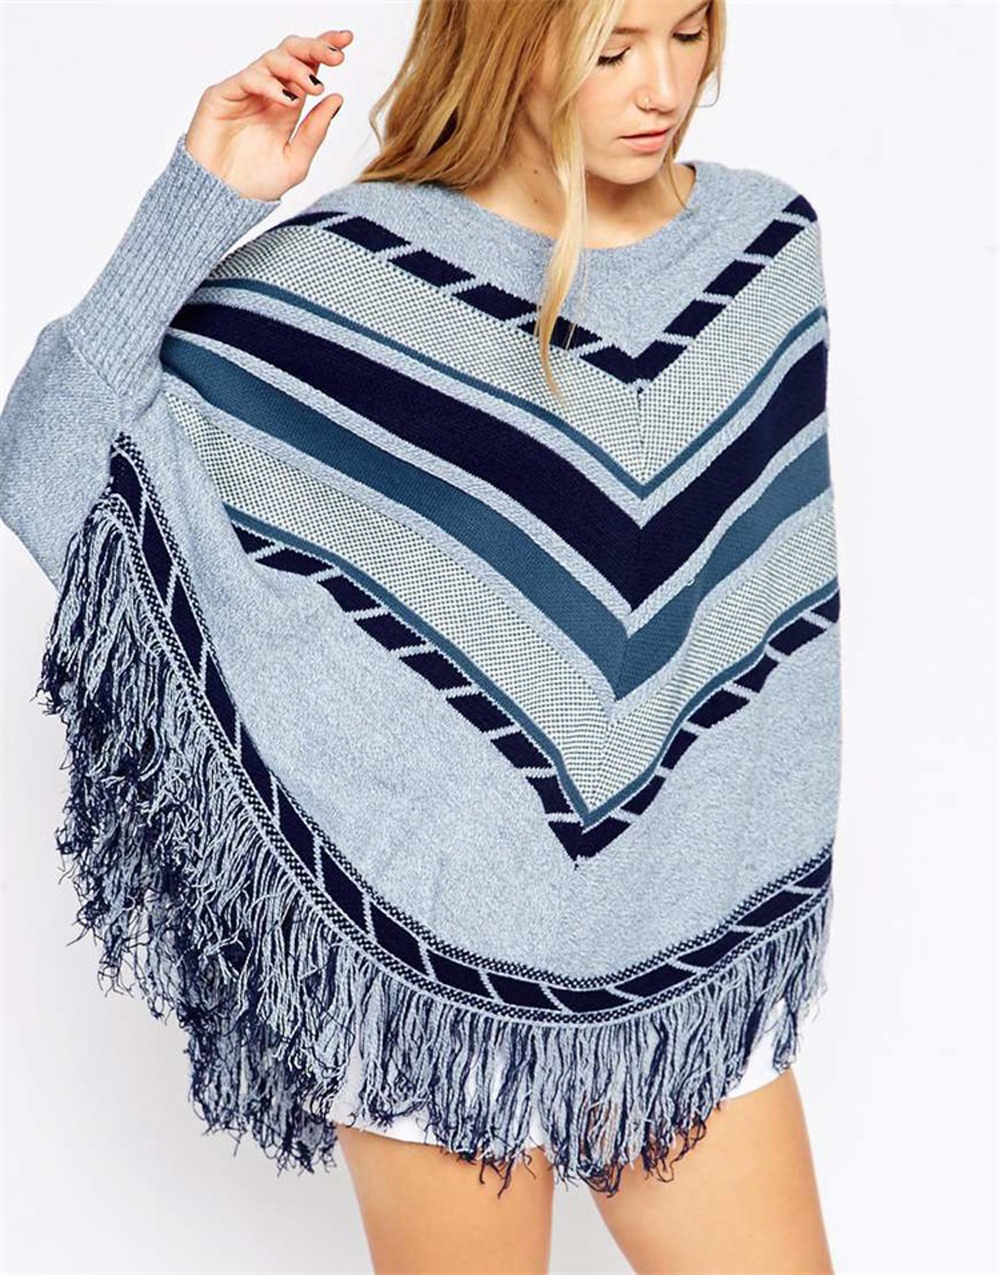 цены на Maternity Tassel Cape Shawl Sweater Poncho Ladies' Cape with Fringed Hem Striped Patchwork Pullover Fashionable Retro Style